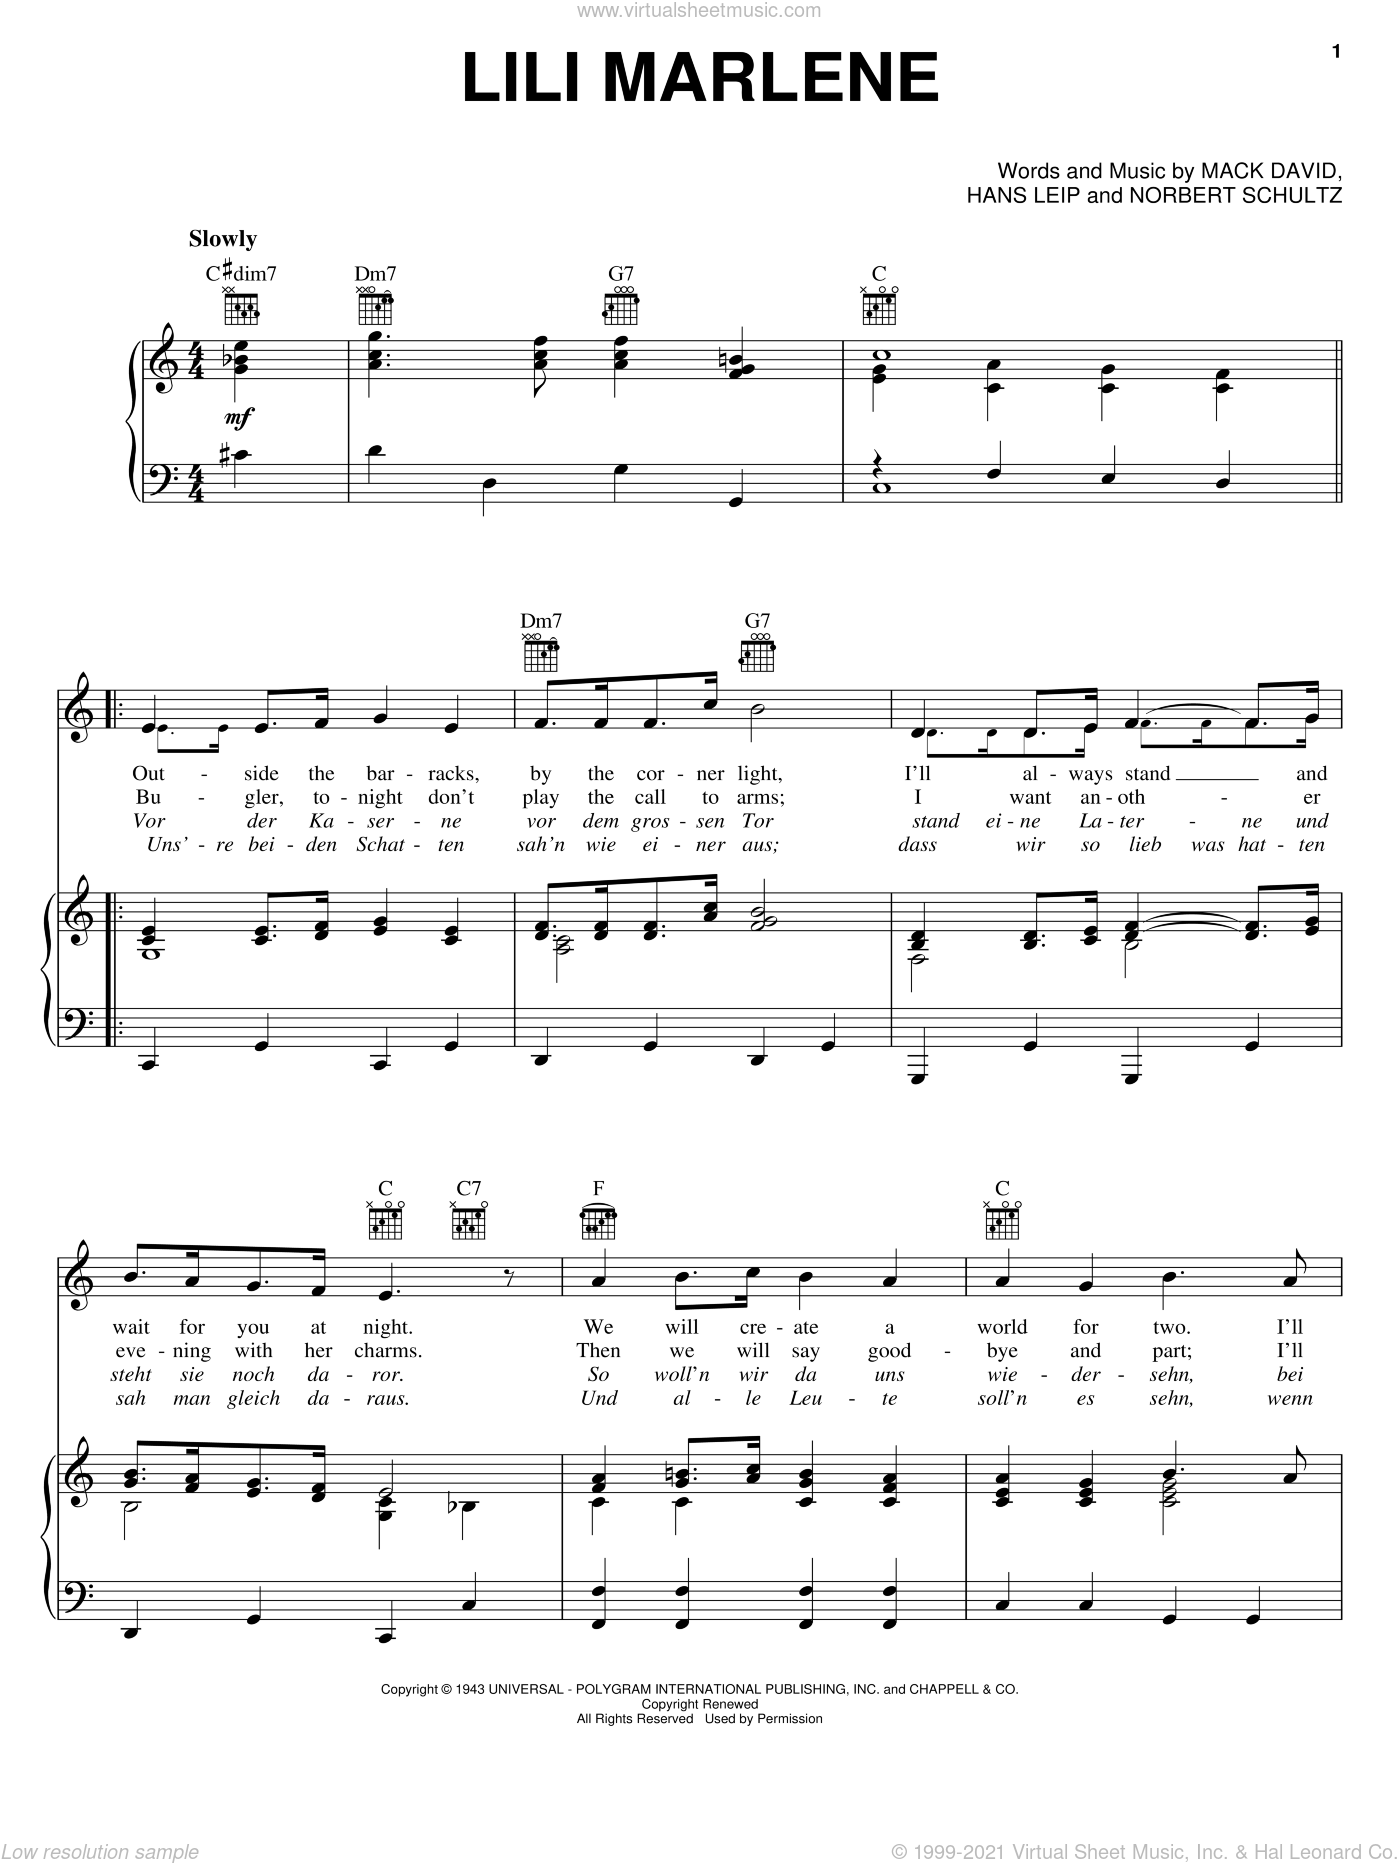 Lili Marlene sheet music for voice, piano or guitar by Marlene Dietrich, Perry Como, Hans Leip, Mack David and Norbert Schultze, intermediate skill level